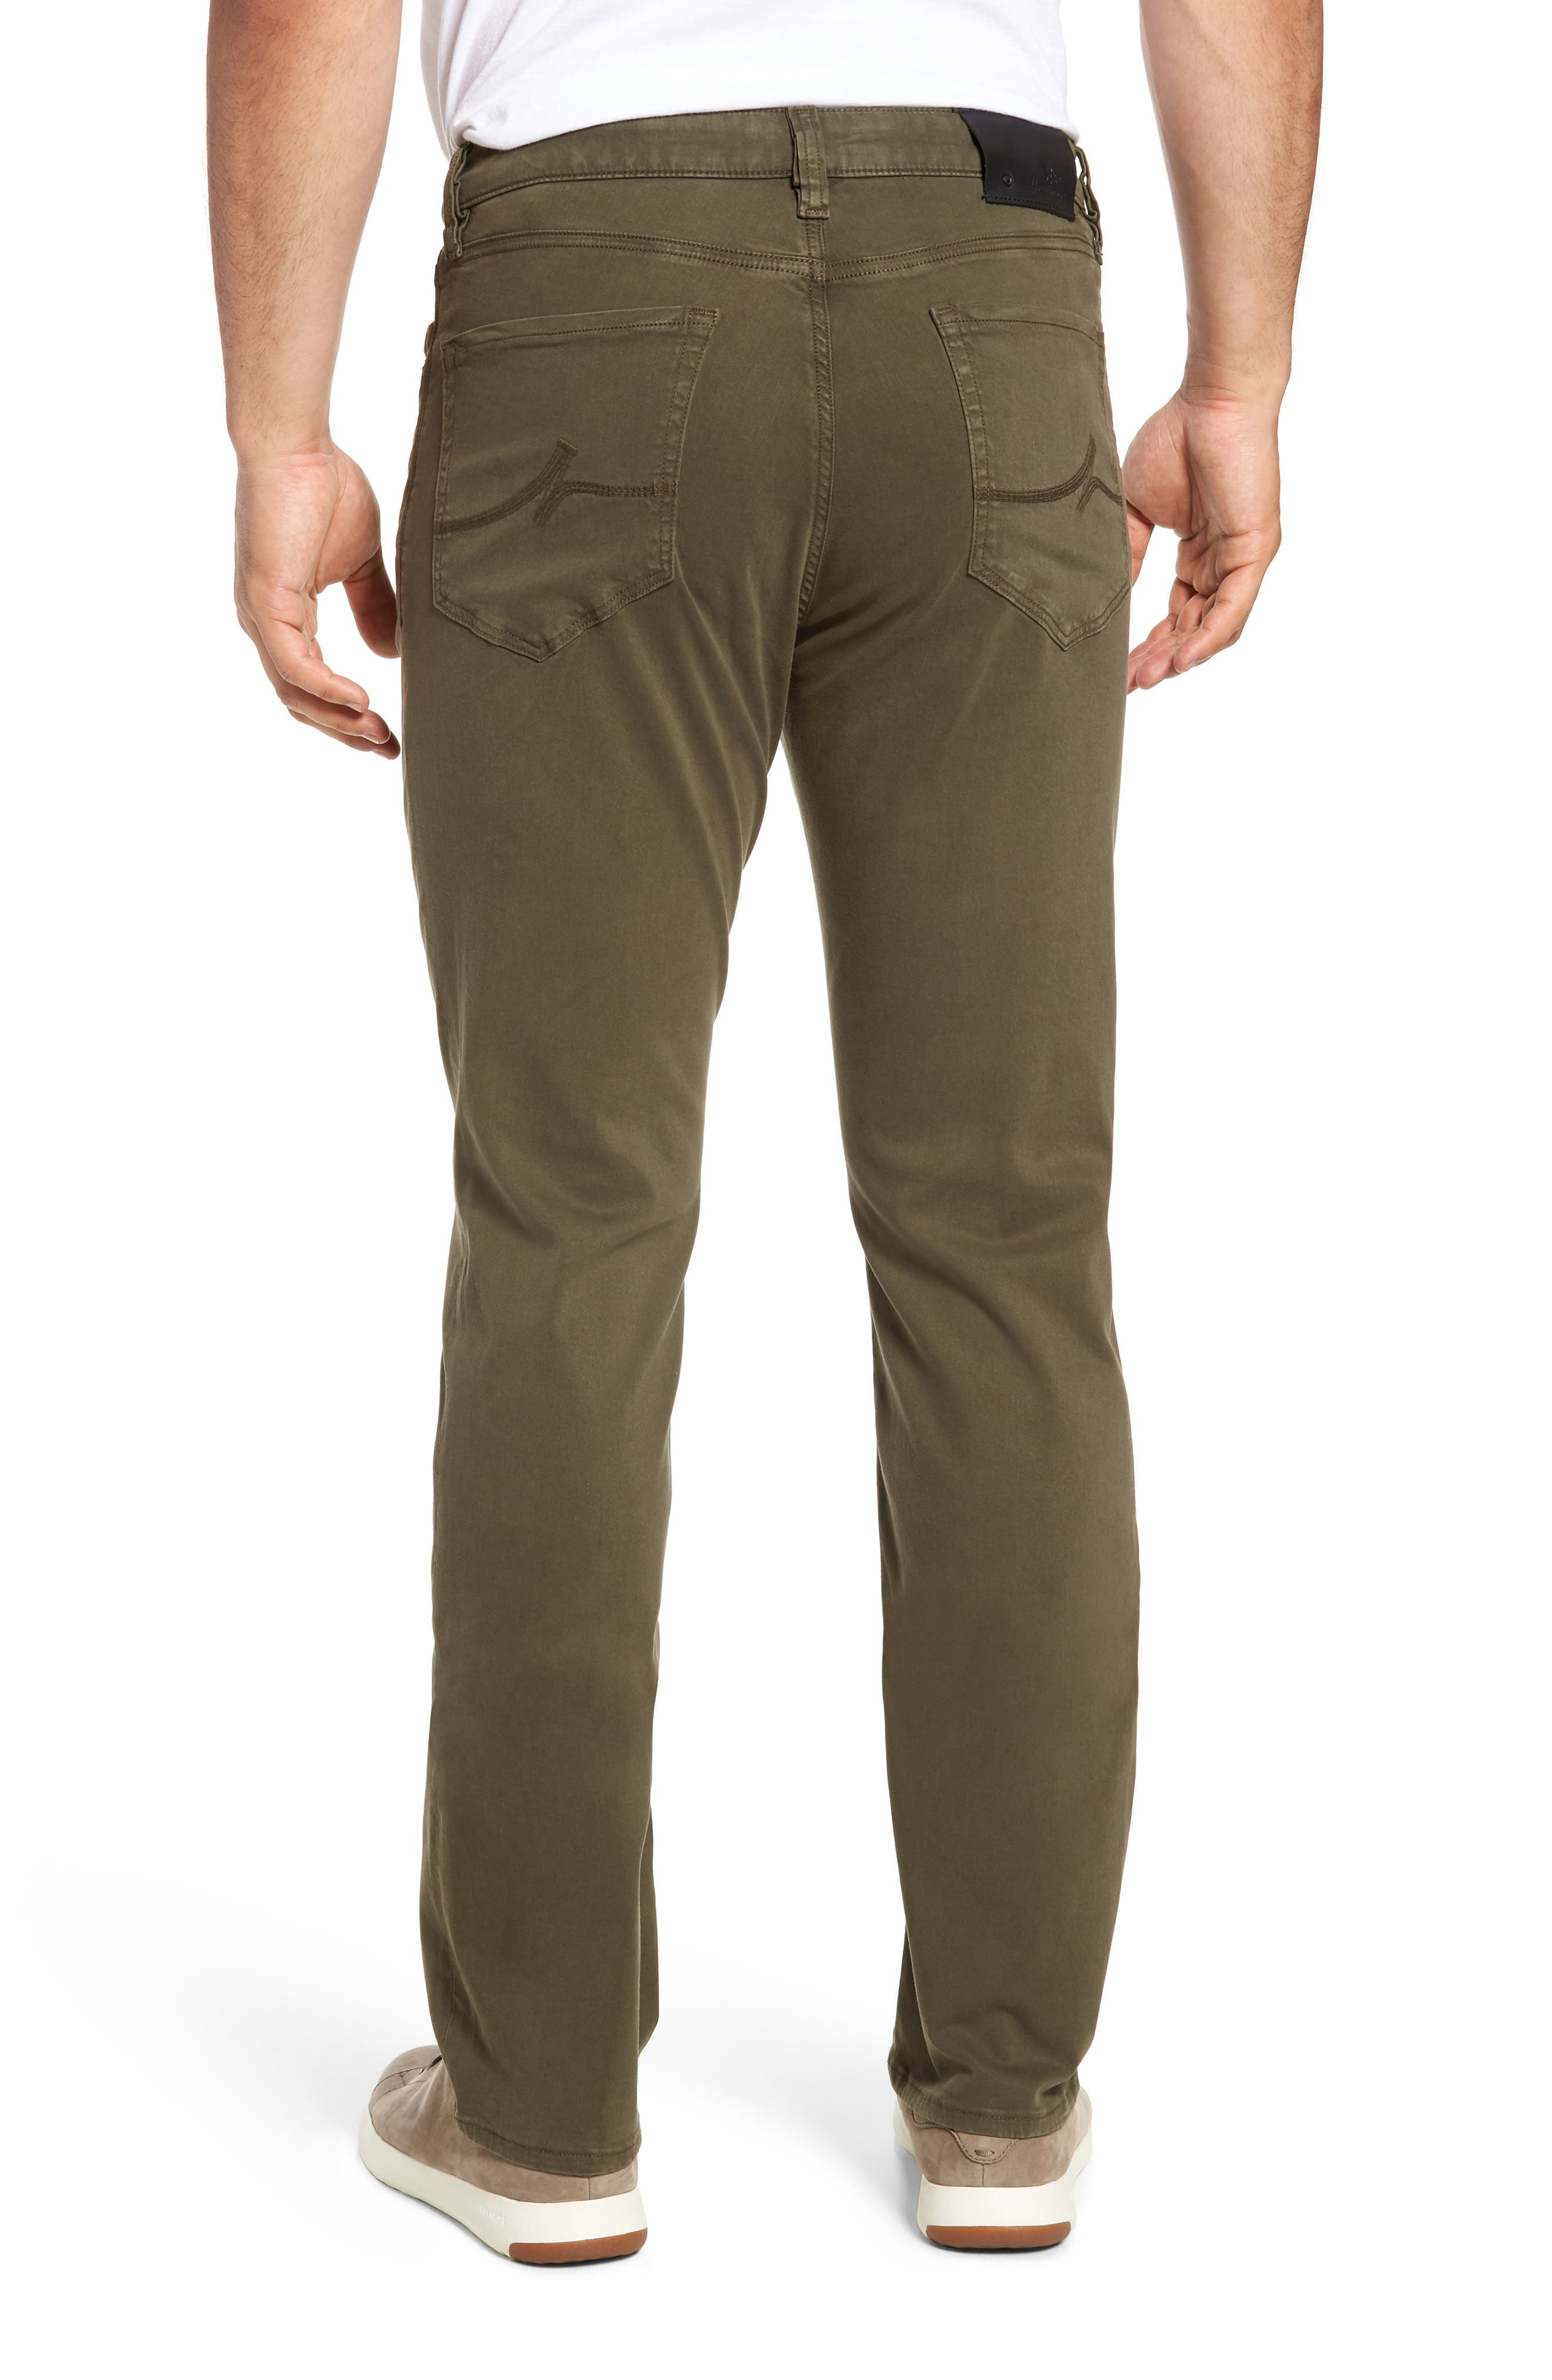 Charisma Relaxed Fit Pants,                             Alternate thumbnail 2, color,                             Olive Twill